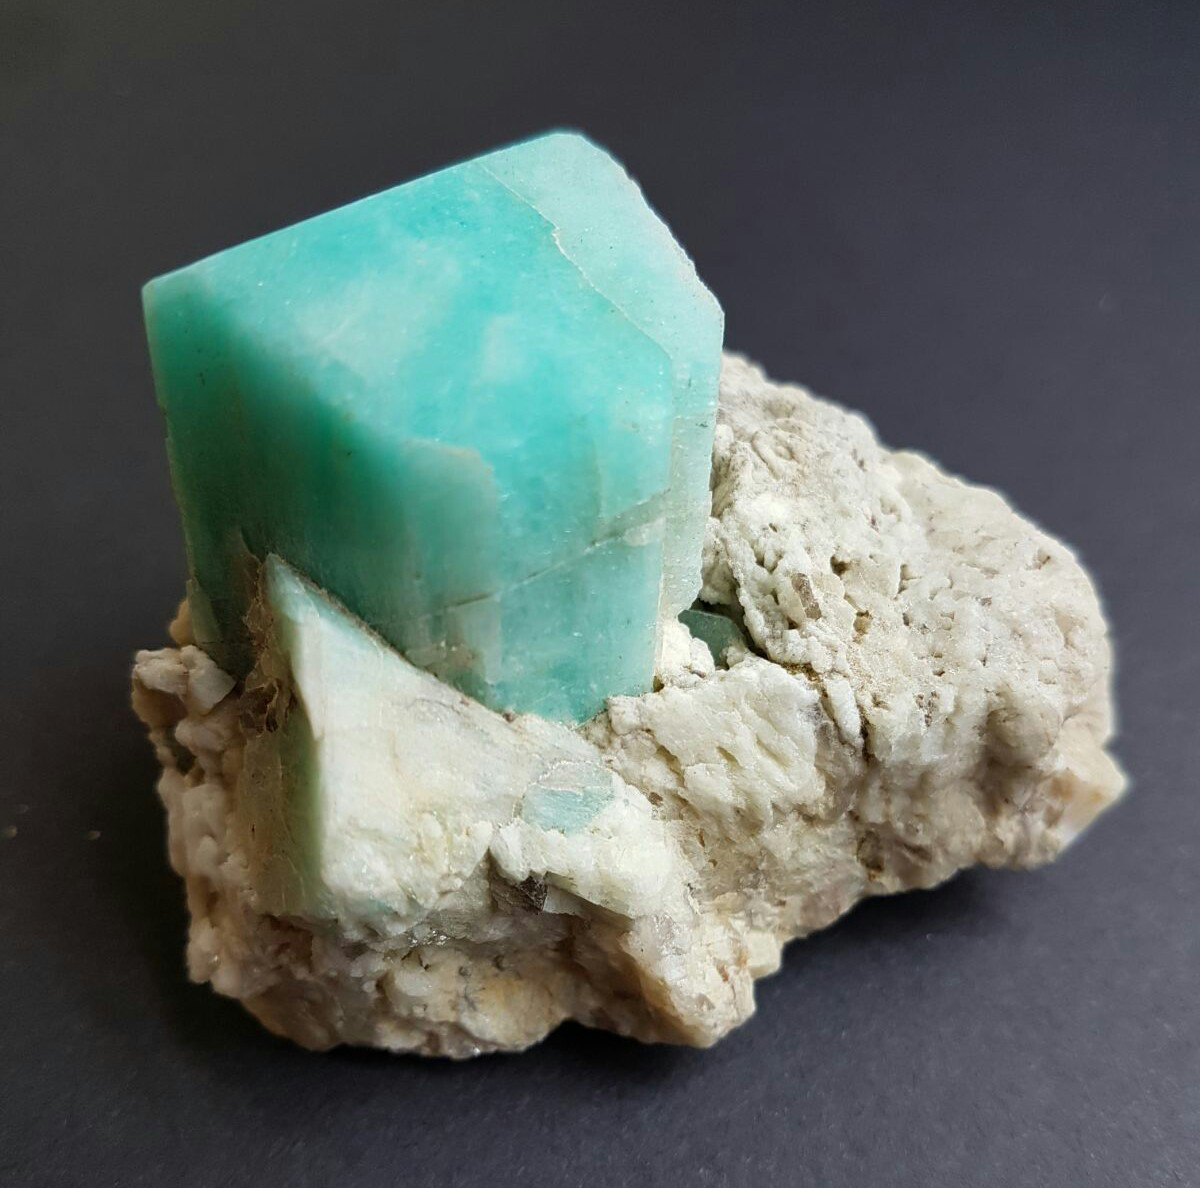 Amazonite crystal on matrix, with vertical crystal of magnificent green color.